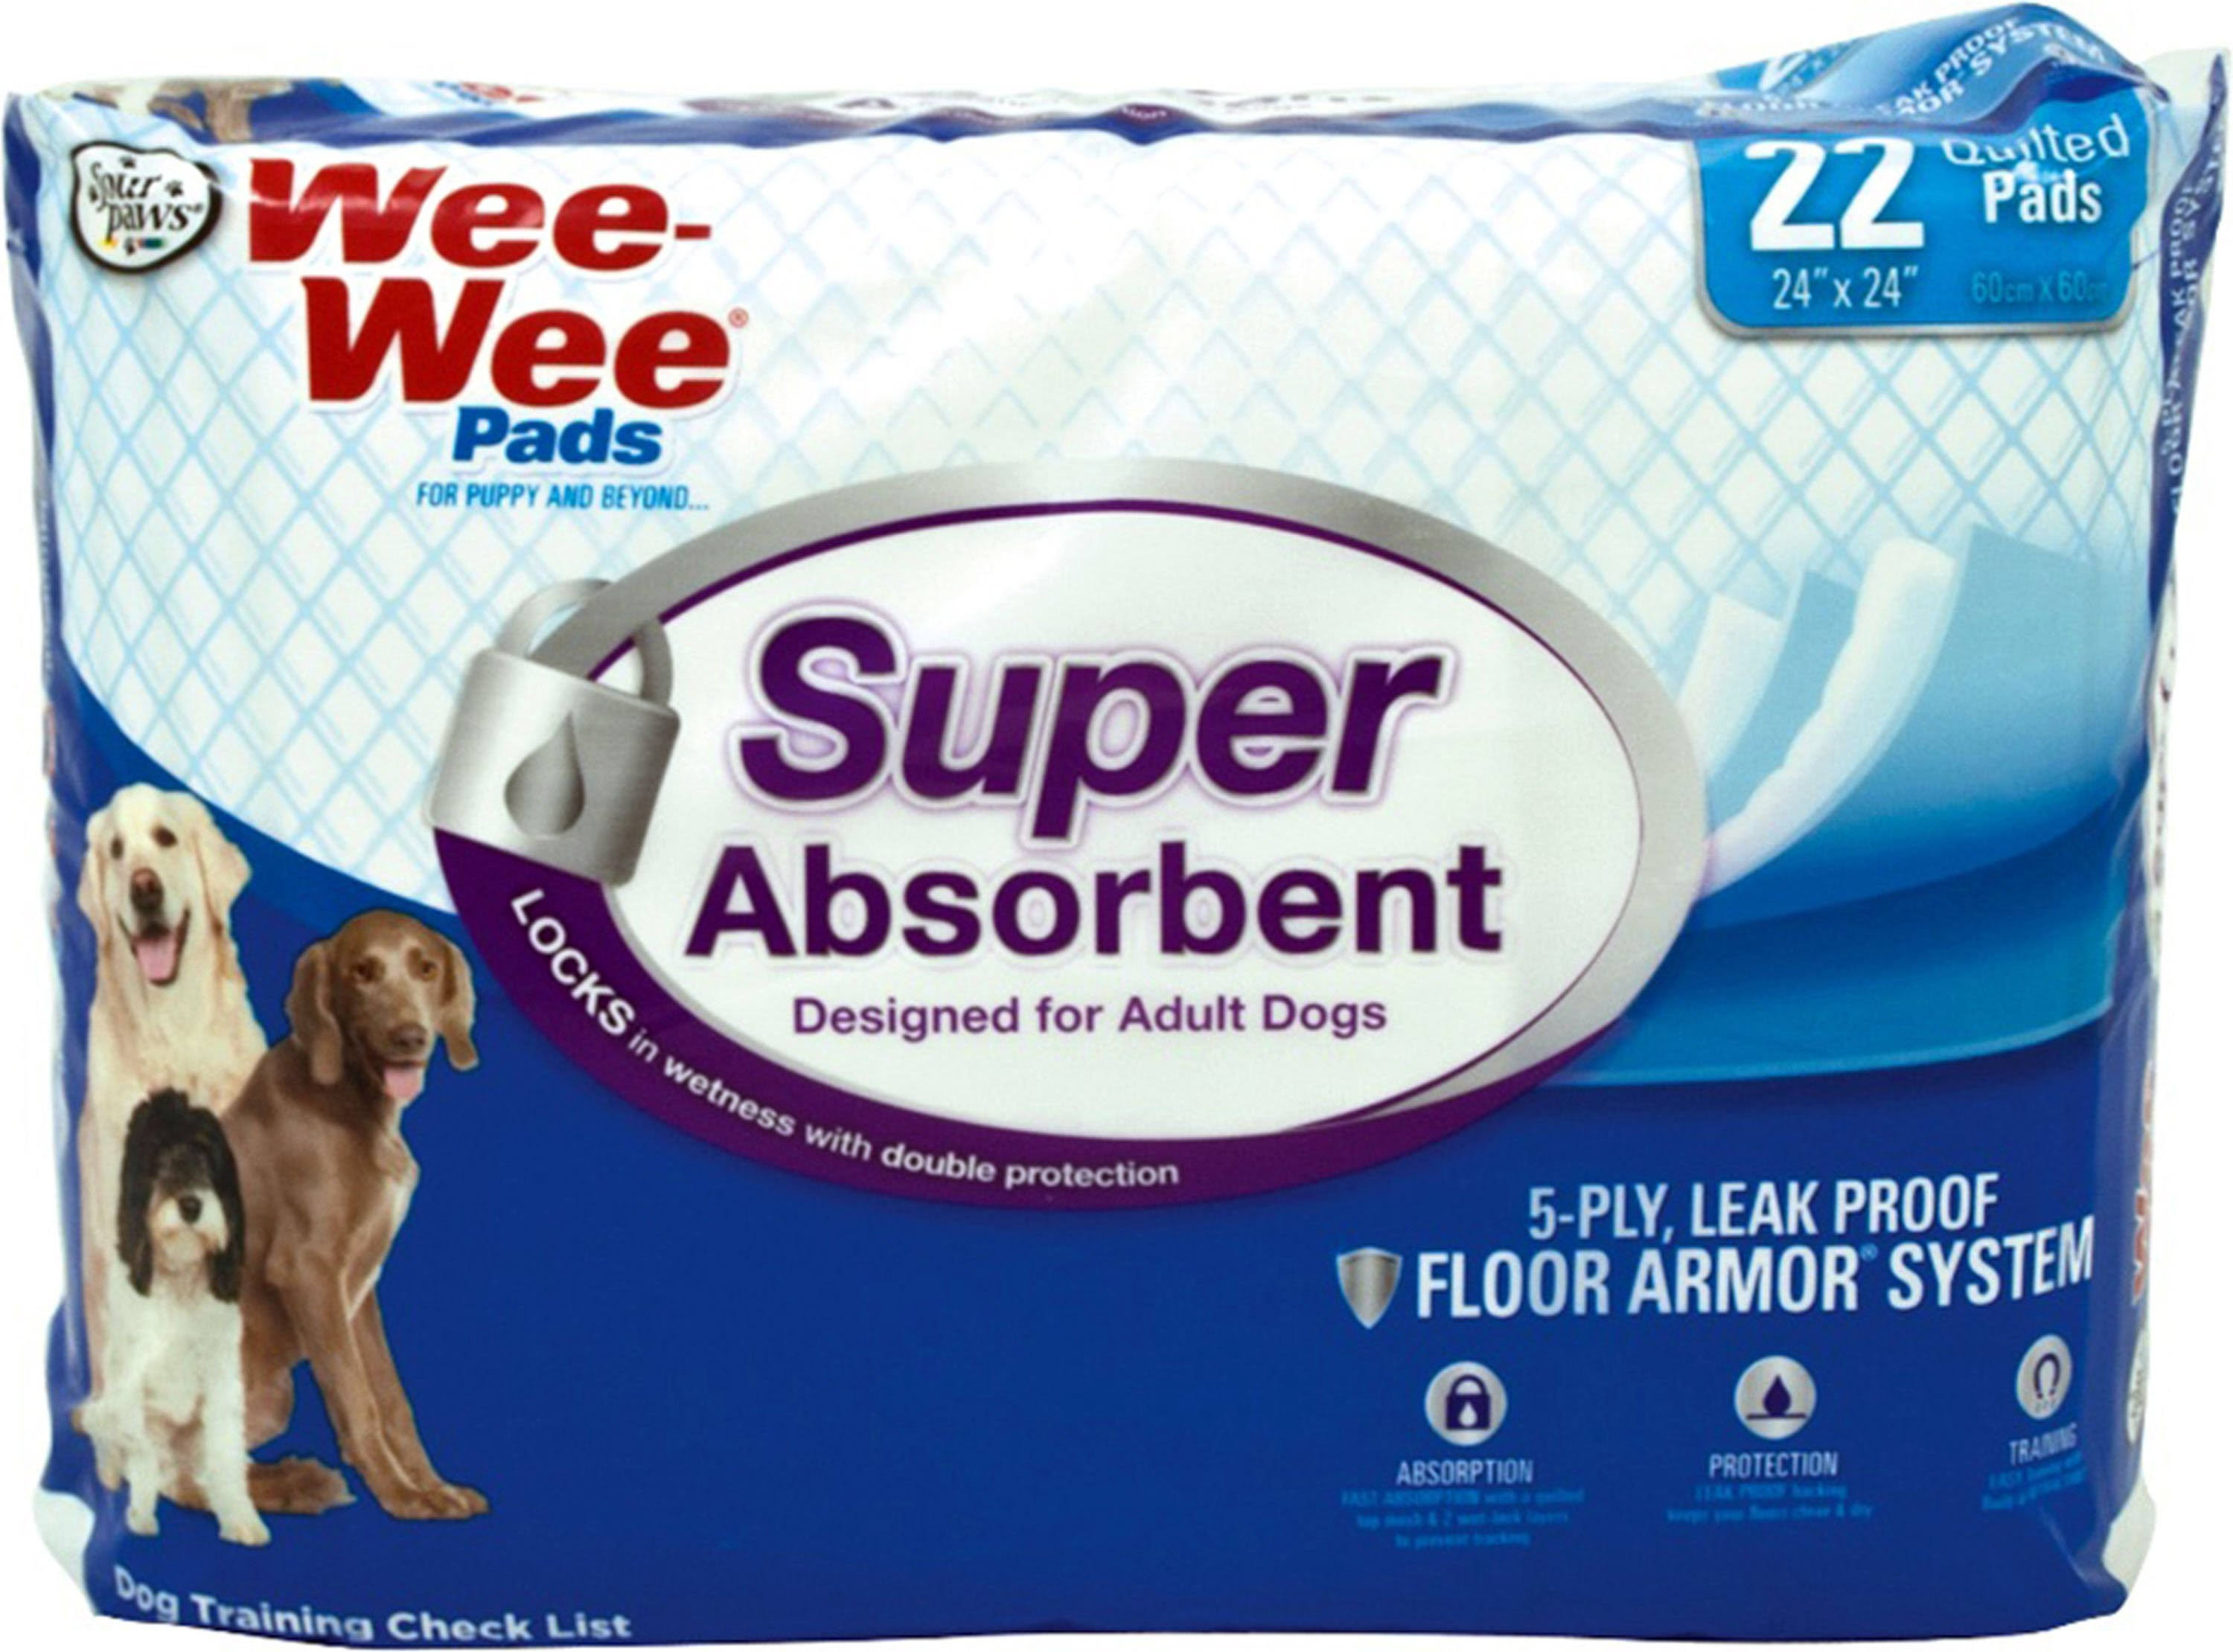 Four Paws Wee-Wee Pads - Super Absorbent - 22 Count